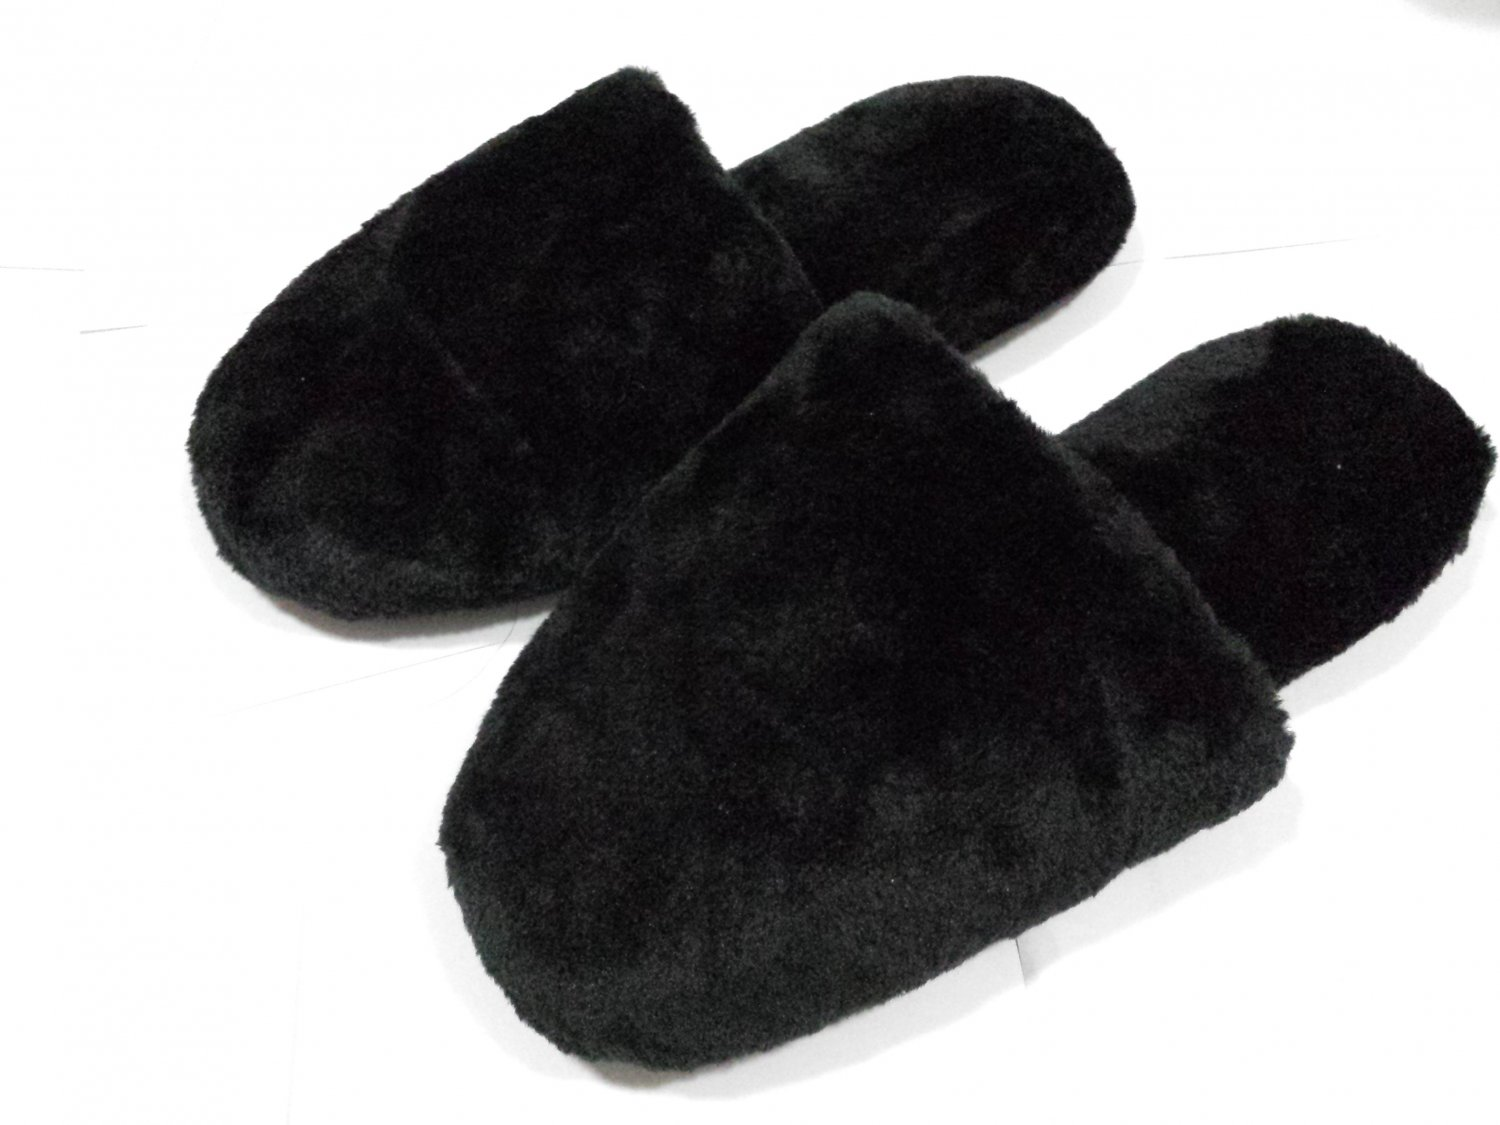 Men Plush Slippers Black NEW $9.99